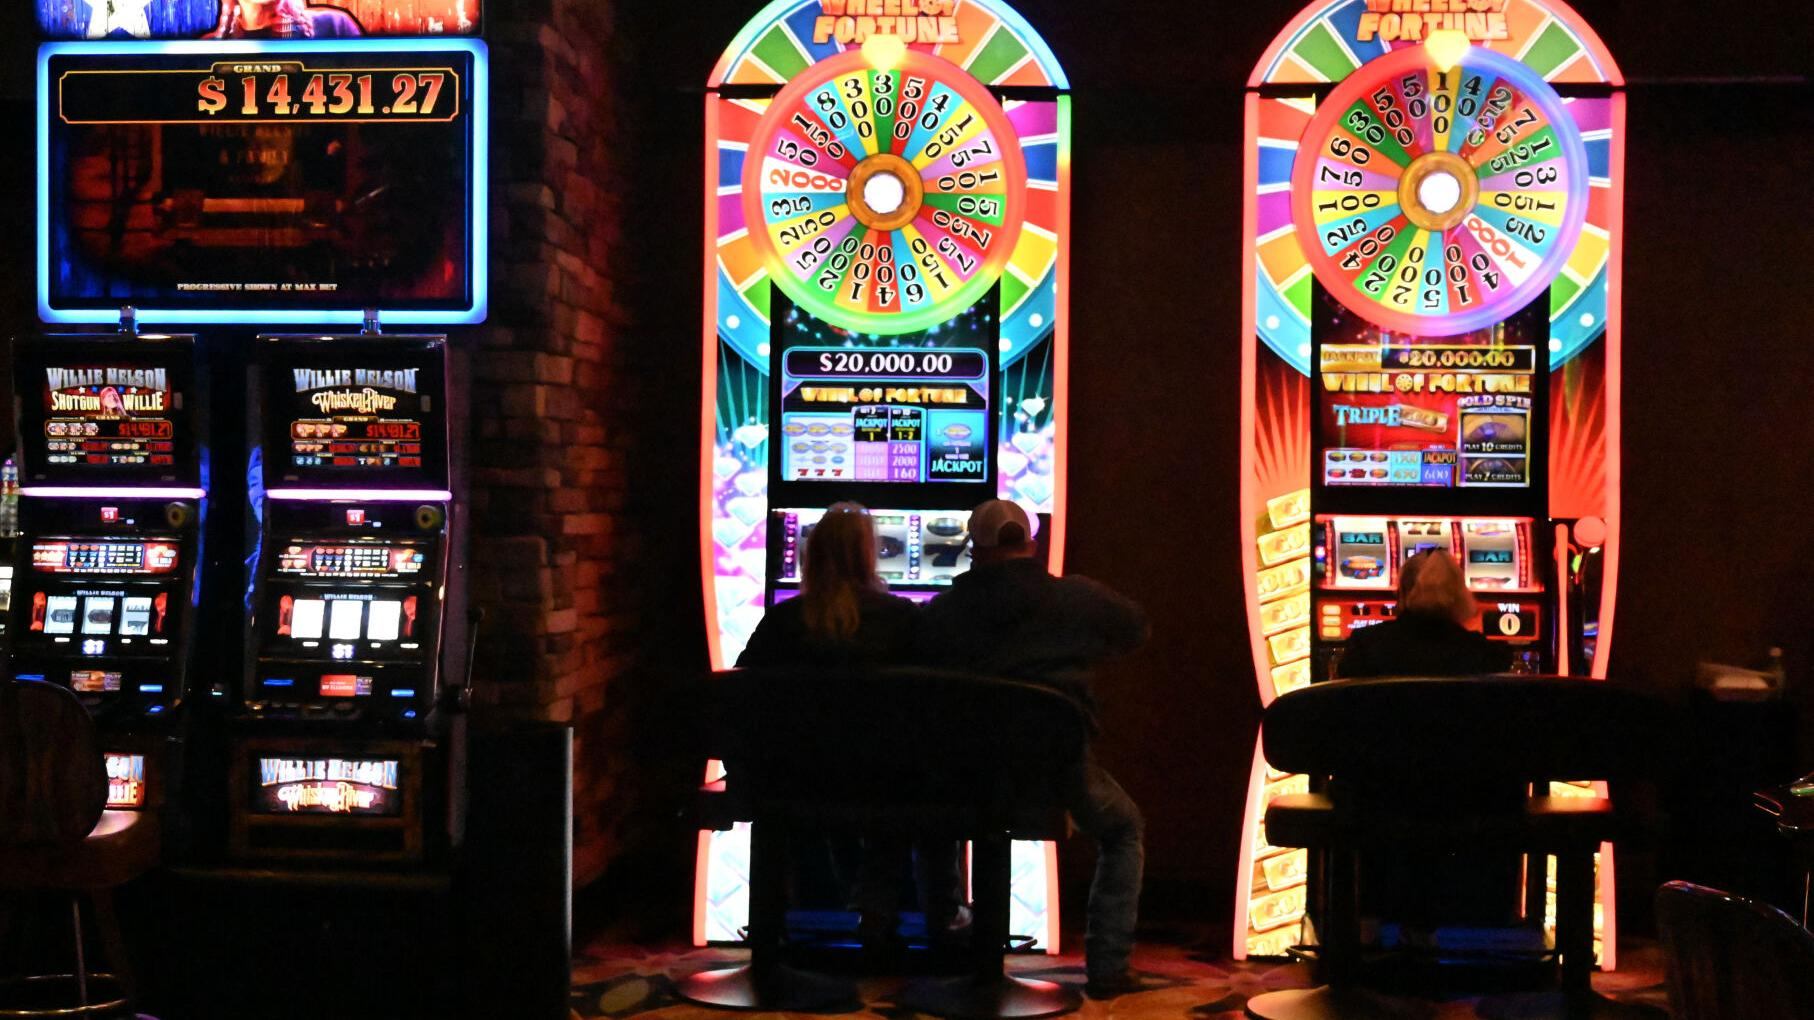 Cripple Creek Approves Additional Games Unlimited Bets For Casinos Business Gazette Com